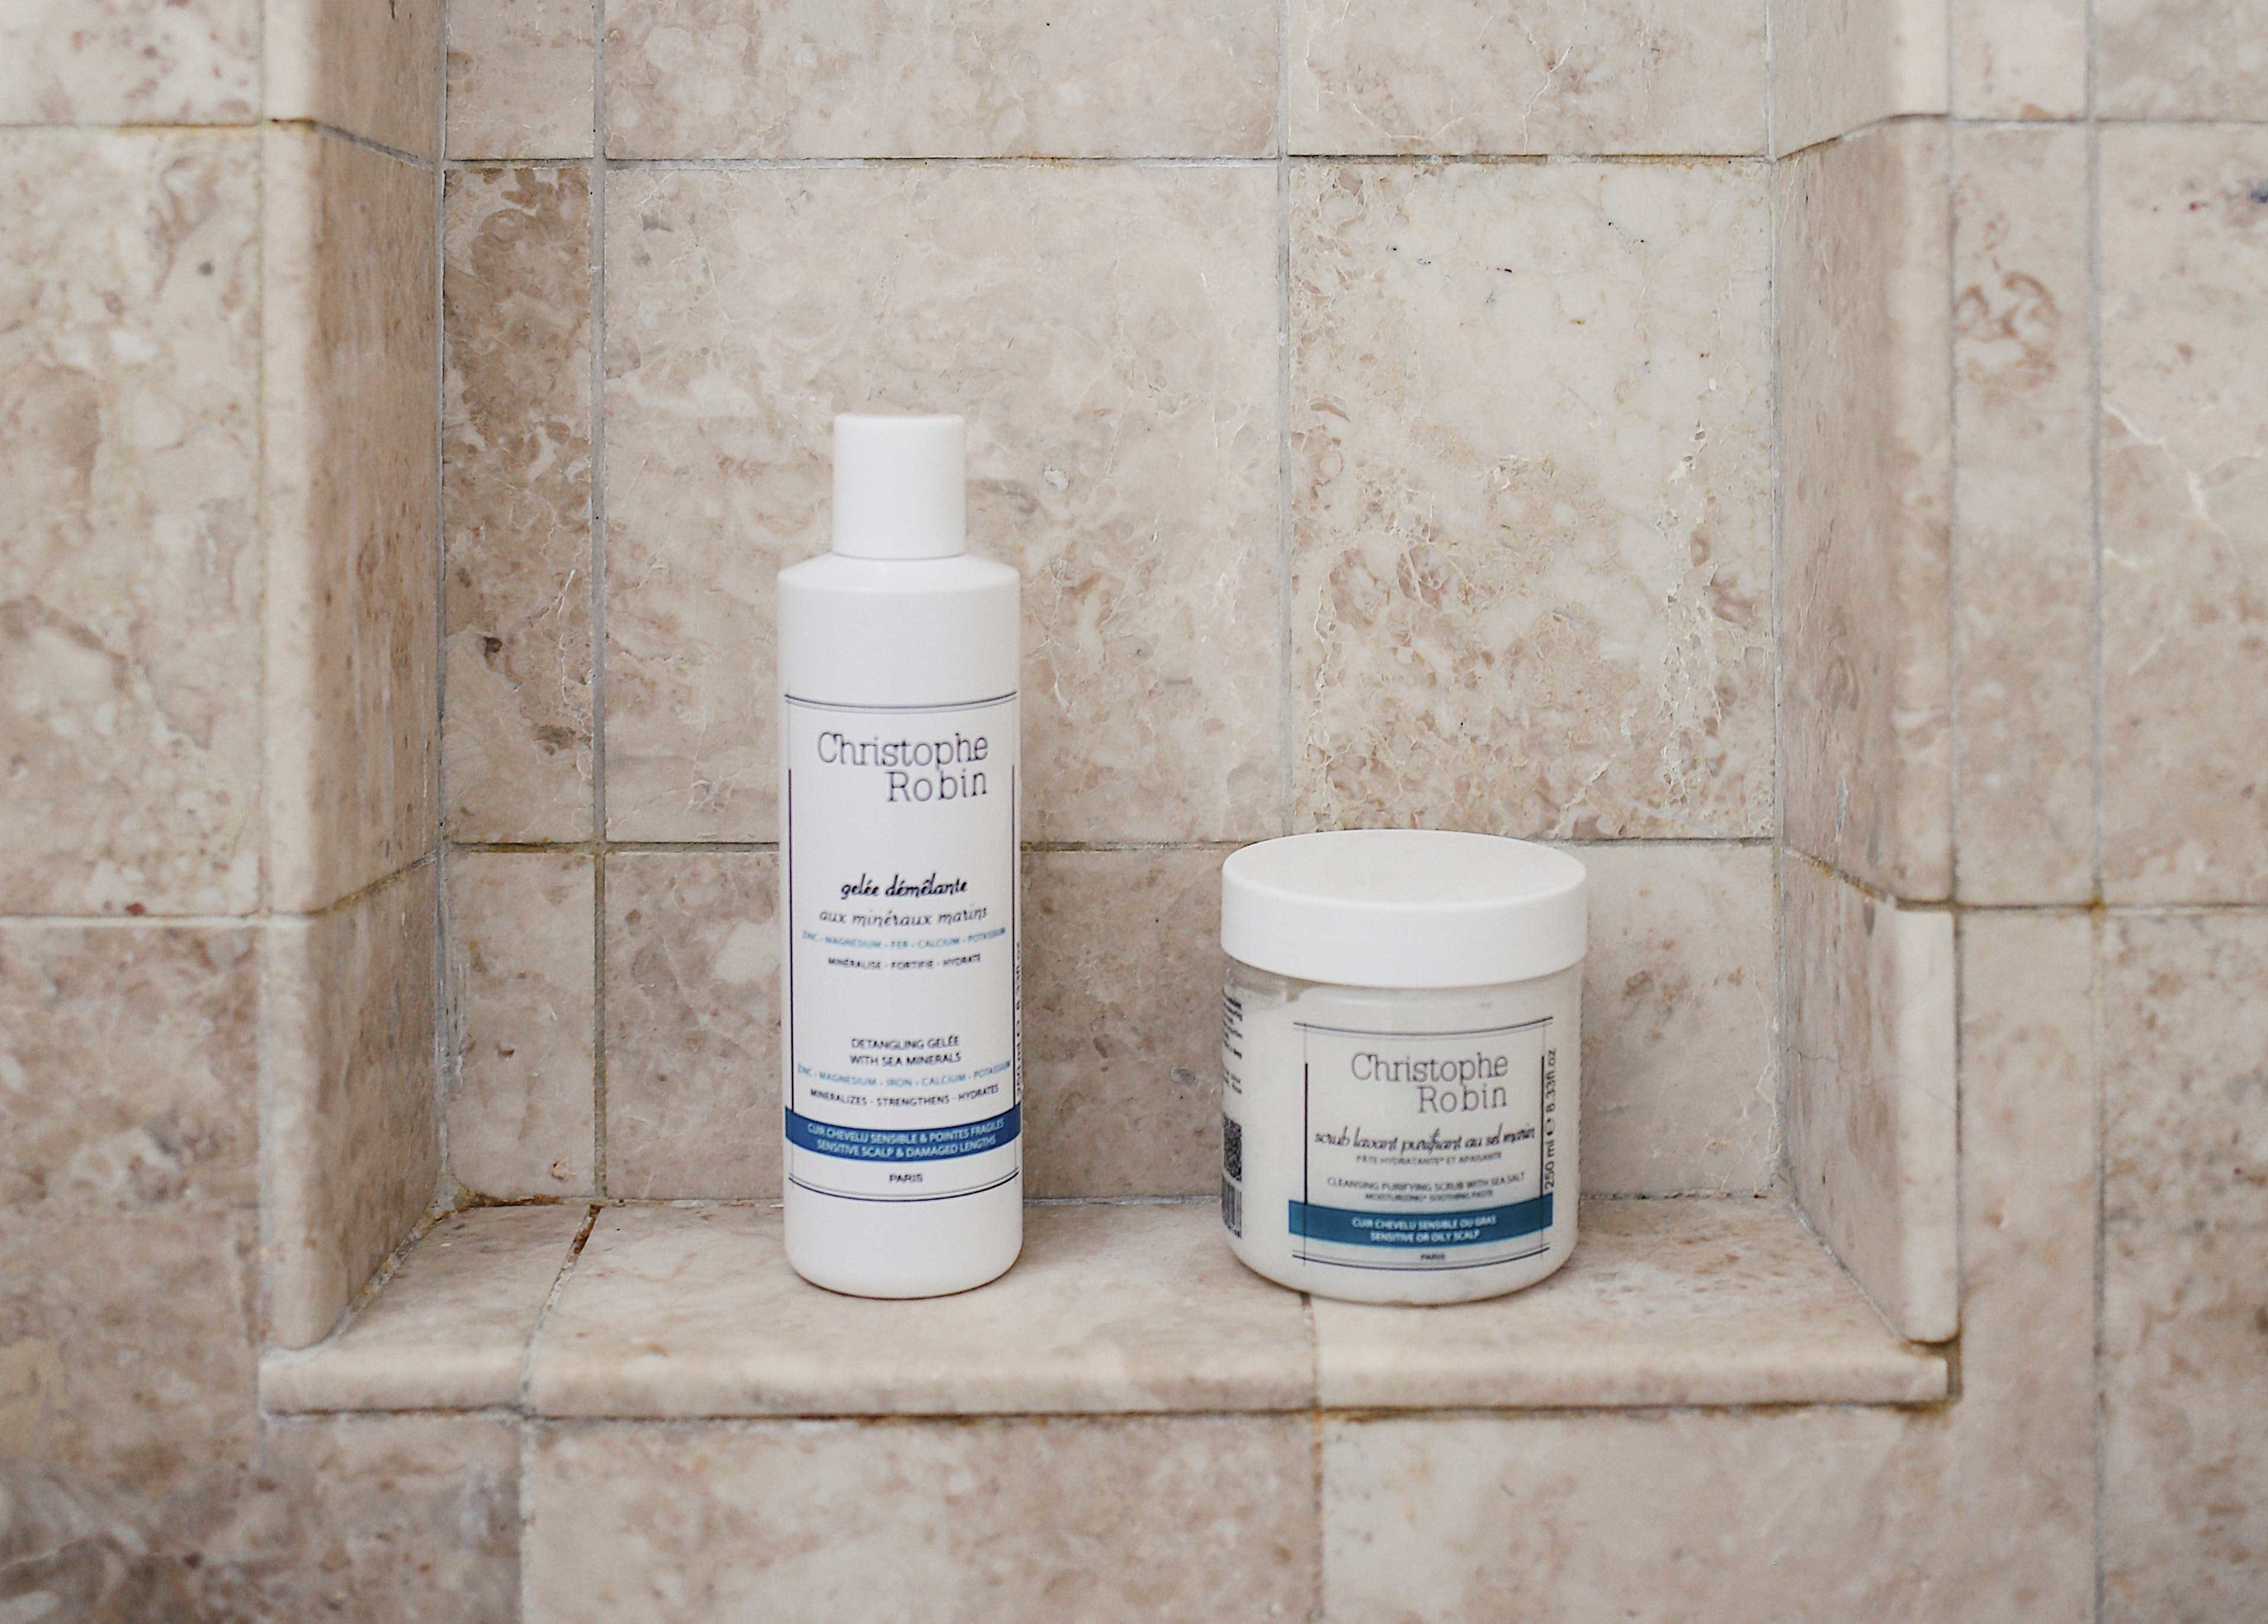 My Christophe Robin Scalp Detox Ritual with the purifying sea salt scrub and detangling gelee with sea minerals. Get all the details of my weekly hair ritual and 20% off and free shipping at ChristopheRobin.com with my promo code Julia20